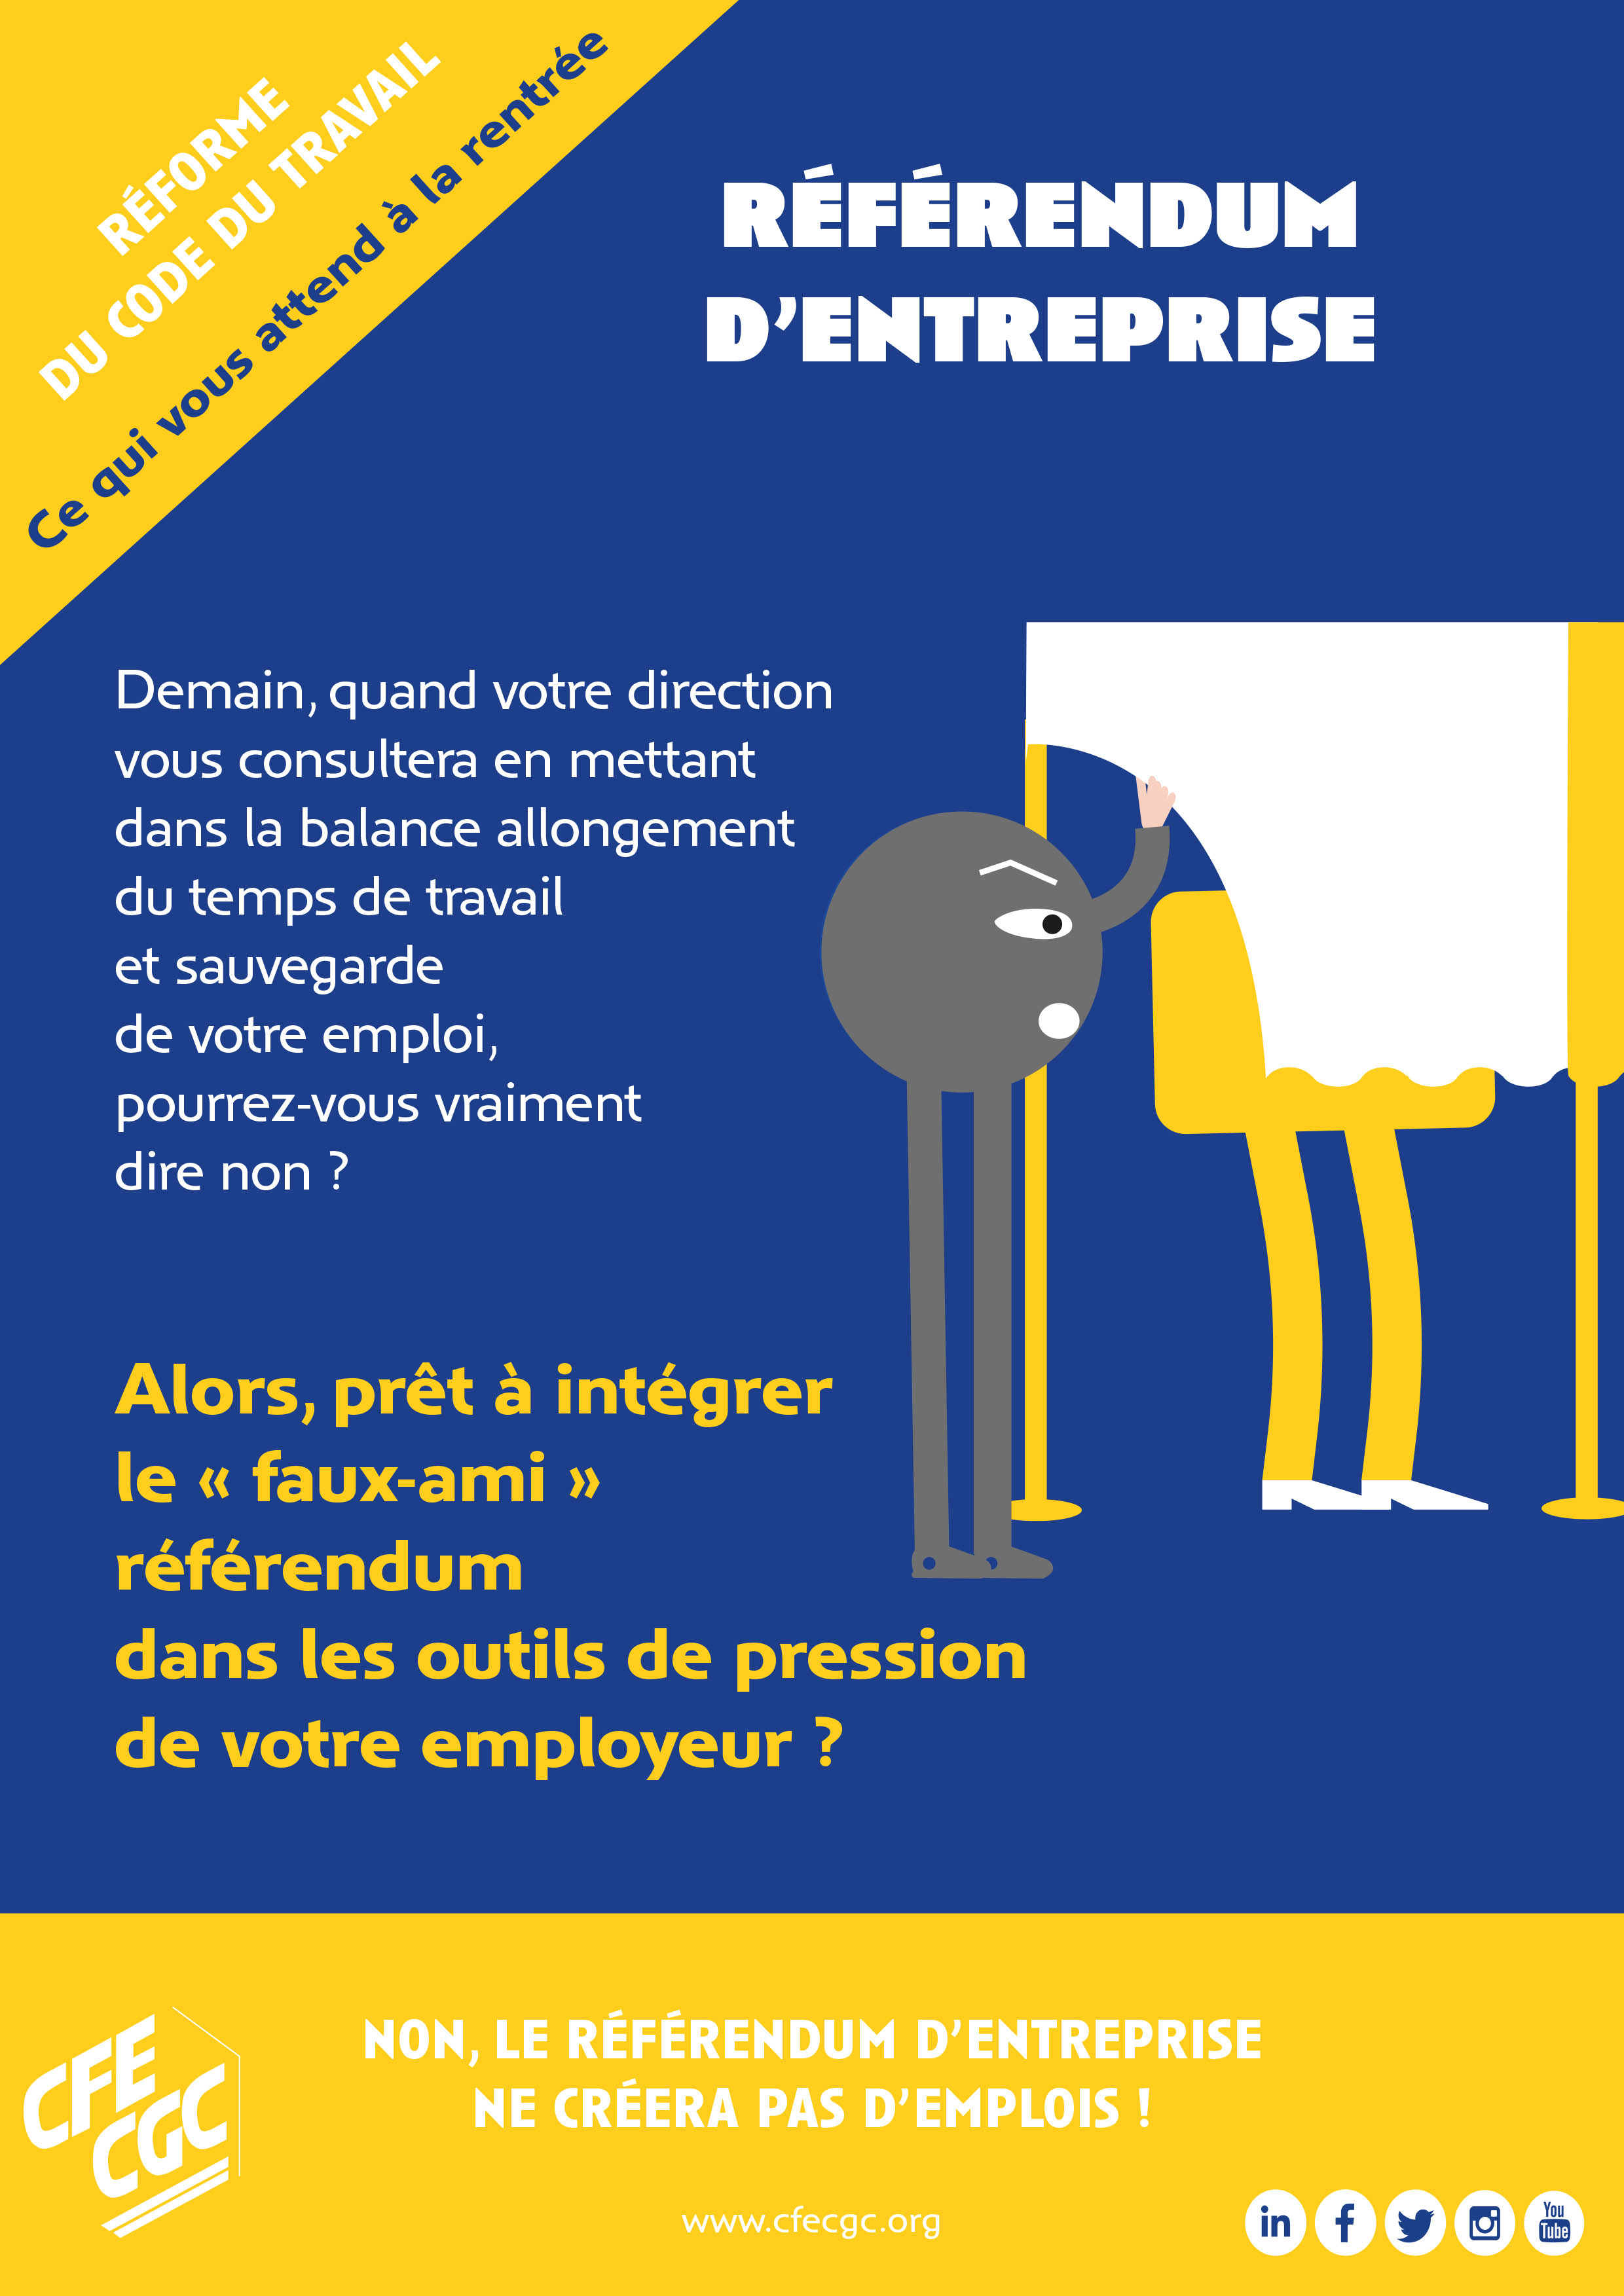 REFERENDUMDENTREPRISE